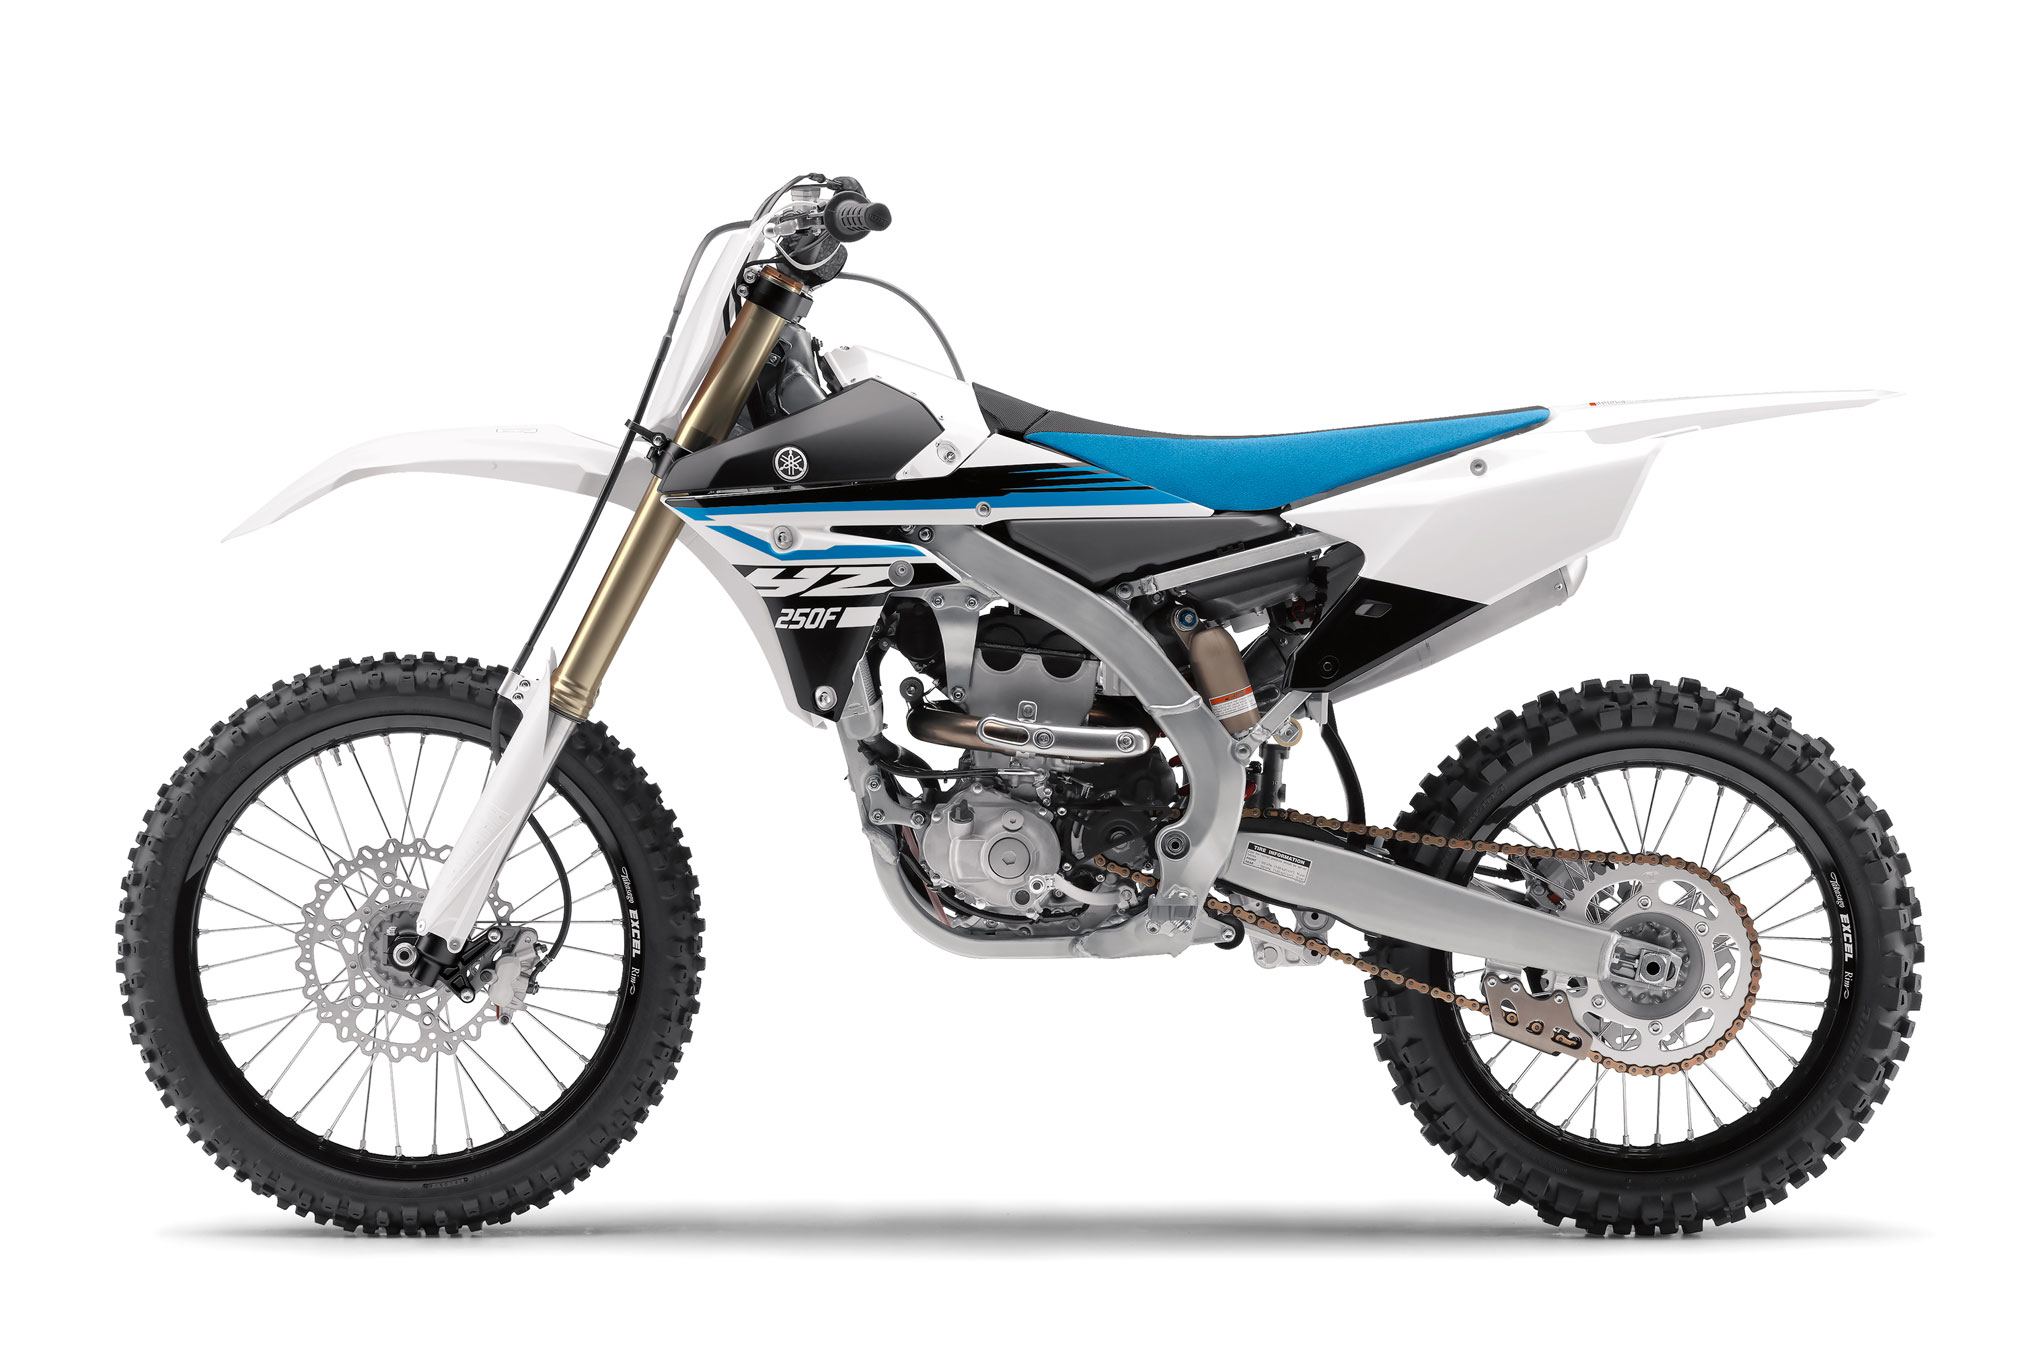 2018 yamaha yz250f review totalmotorcycle. Black Bedroom Furniture Sets. Home Design Ideas